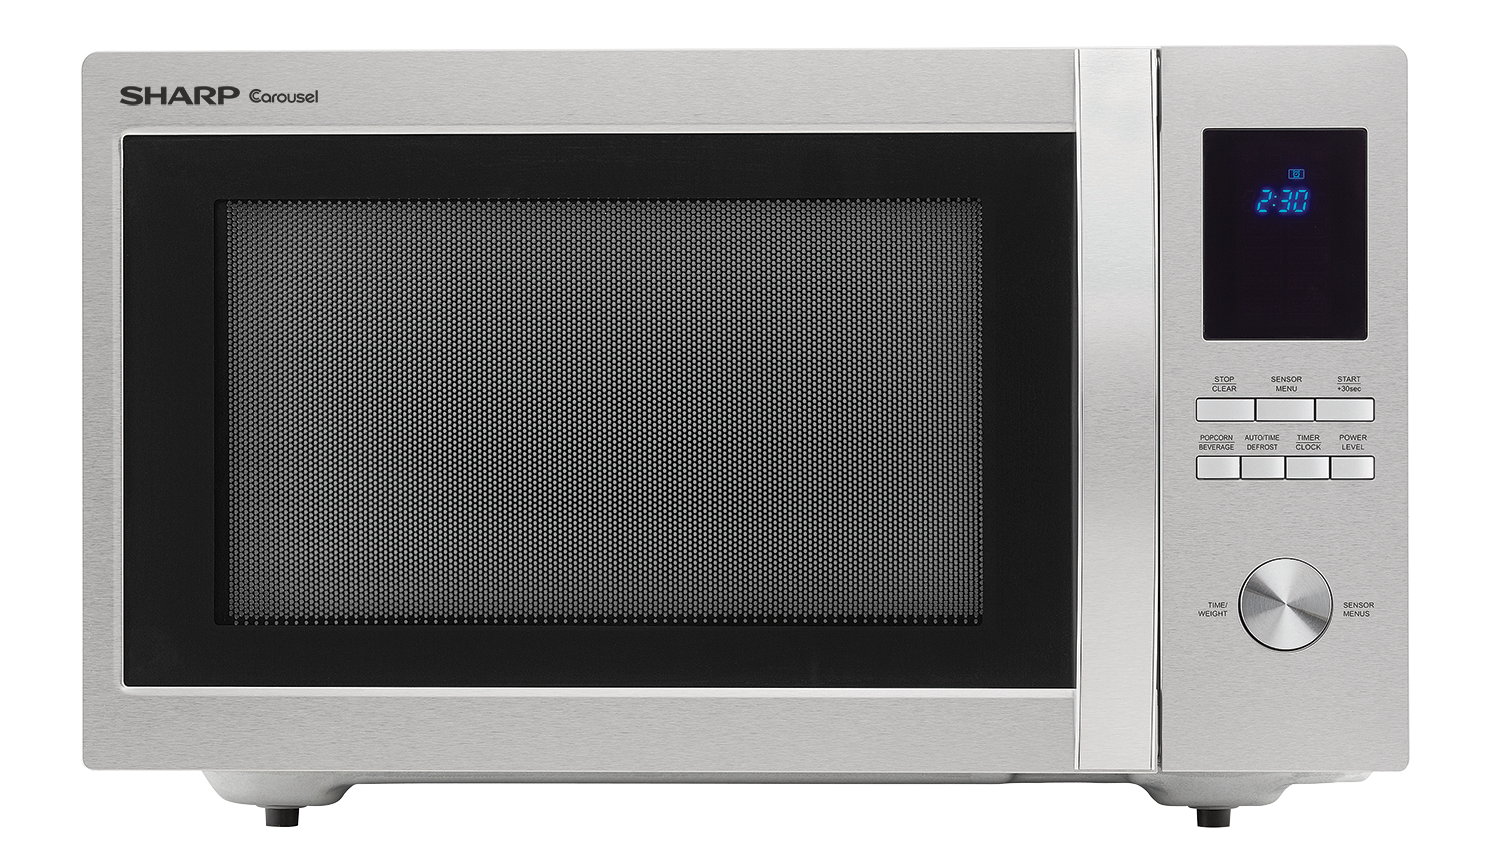 Smc1655bs 1 1 Cu Ft Carousel Microwave Stainless Steel